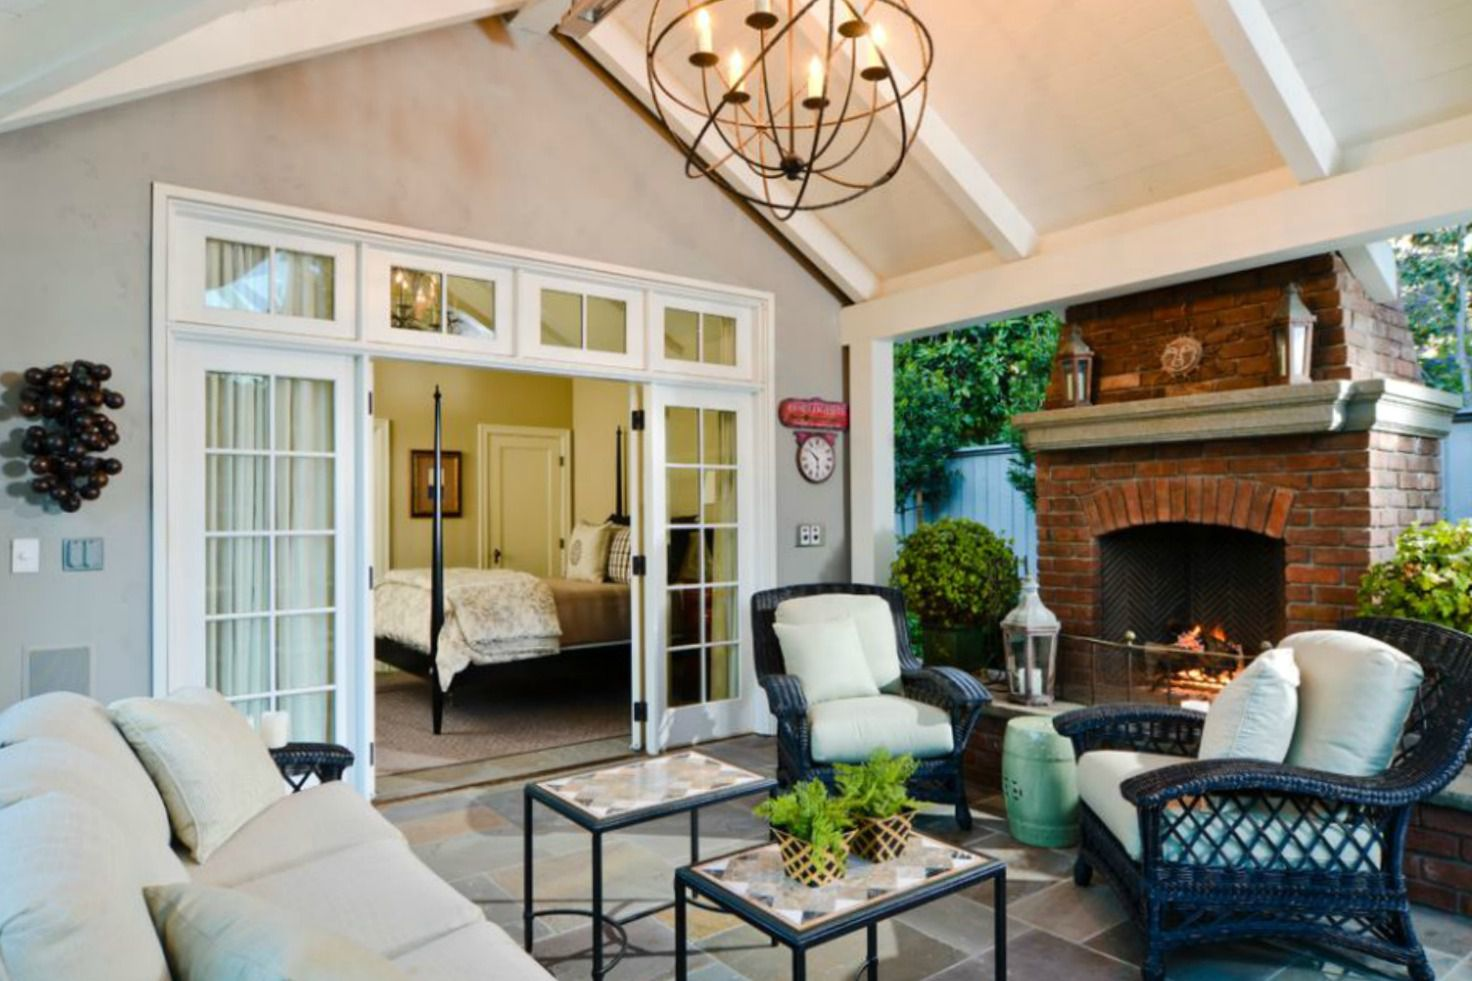 50 outdoor living room design ideas for Outdoor living room ideas